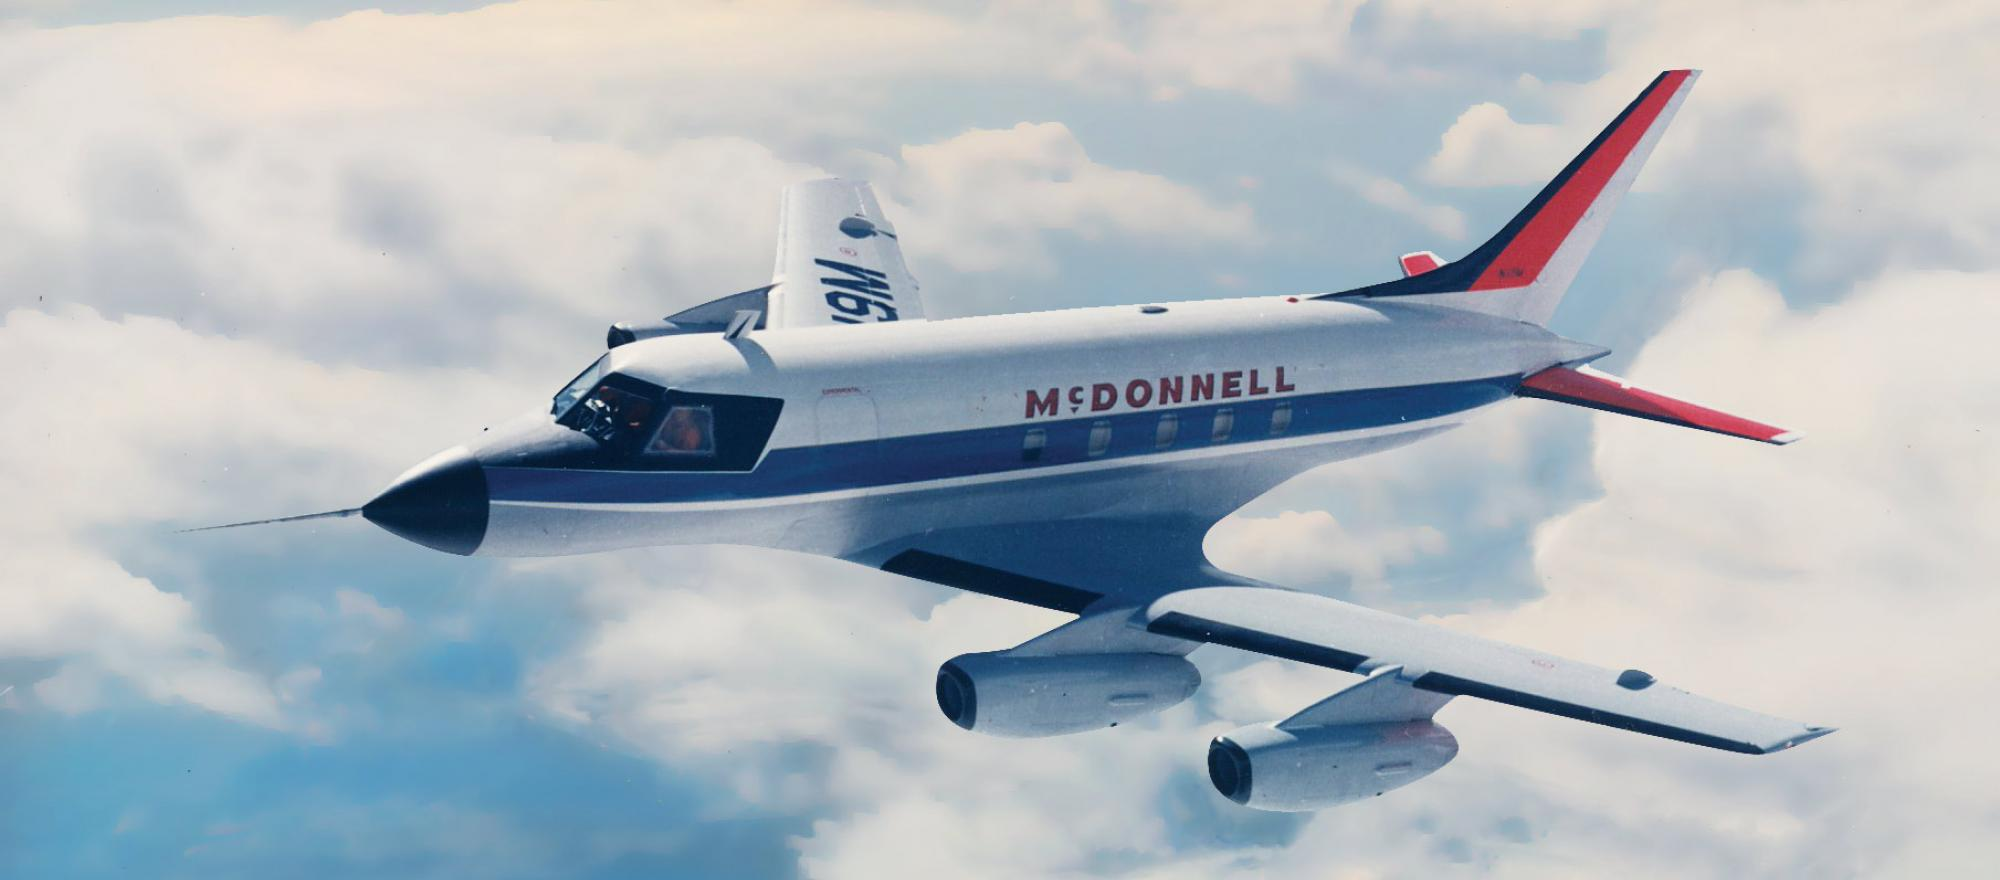 In the 1960s, McDonnell Douglas designed an unusual small jet, the four-engine Model 119. Though it received a provisional type certification, it never went into production.